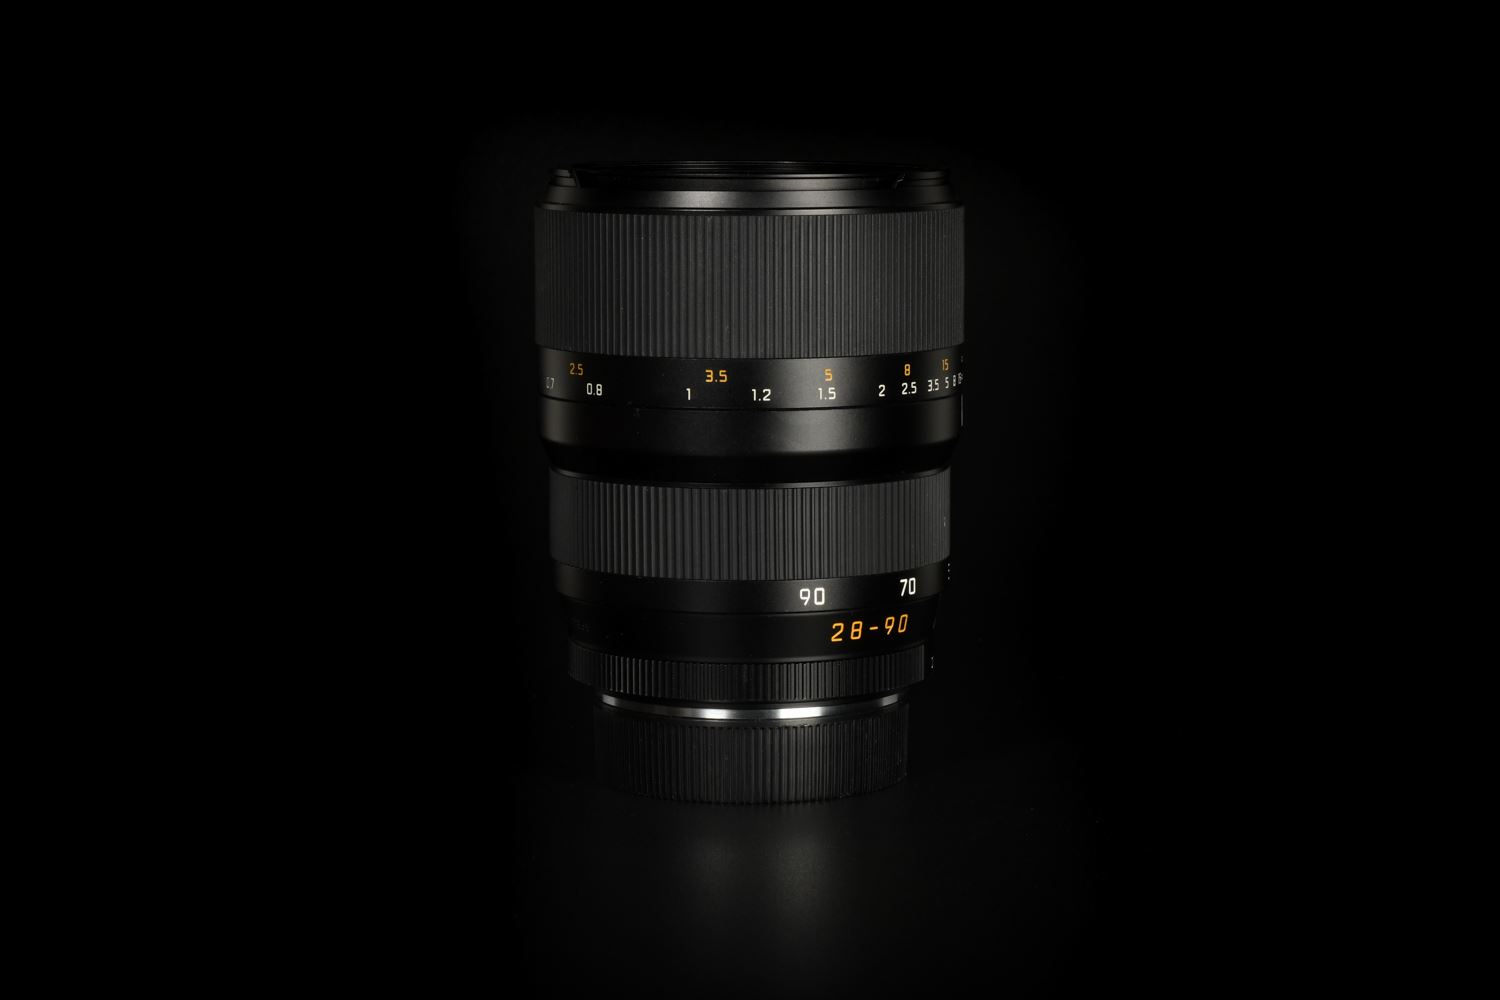 Picture of Leica Vario-Elmarit-R 28-90mm f/2.8-4.5 ASPH ROM